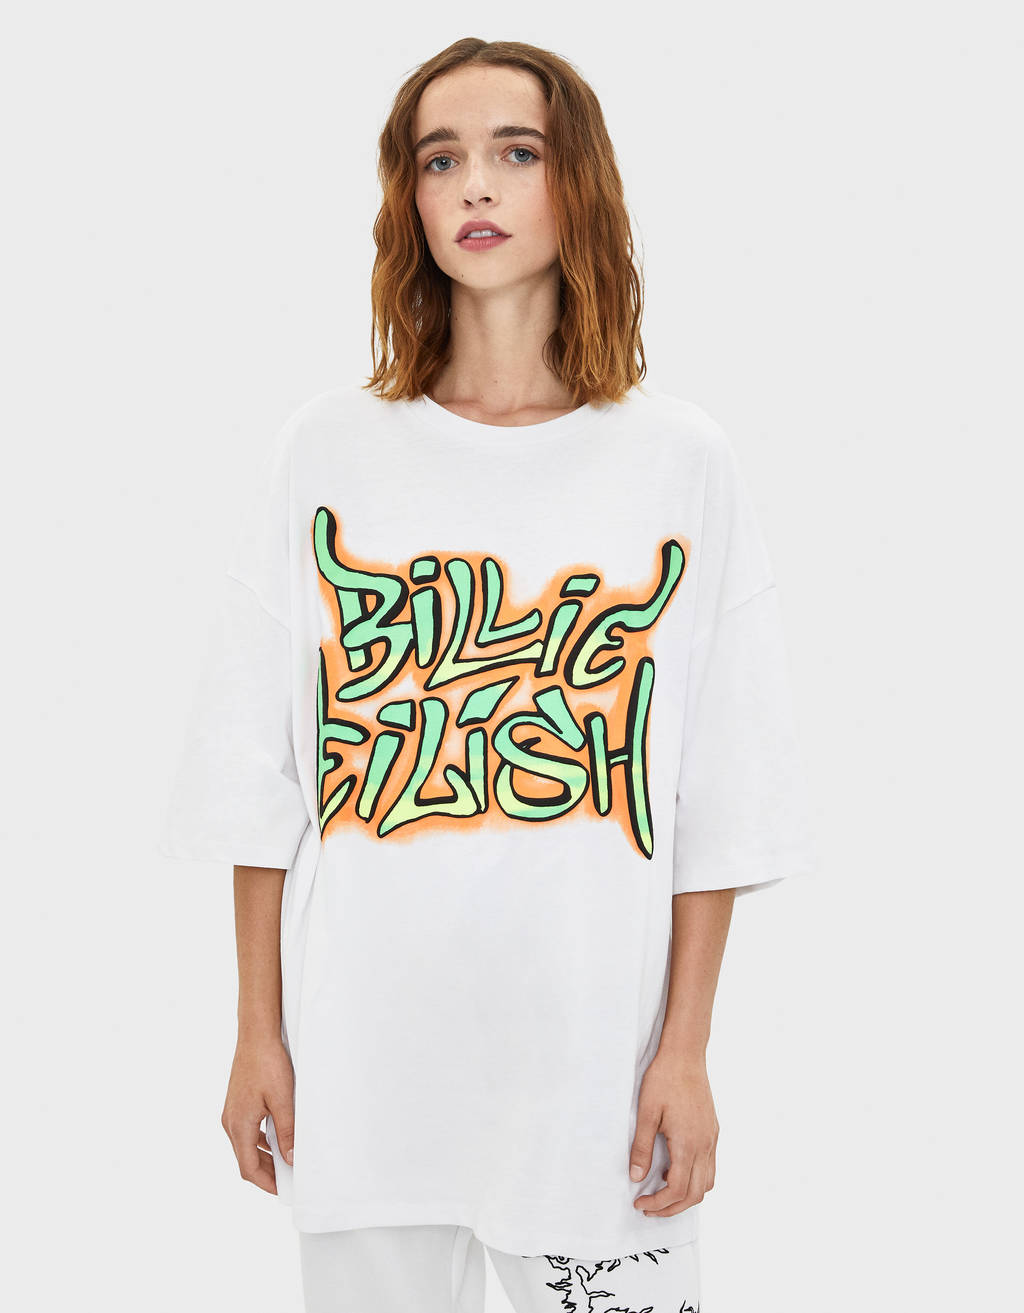 T-Shirt Billie Eilish x Bershka mit Graffiti